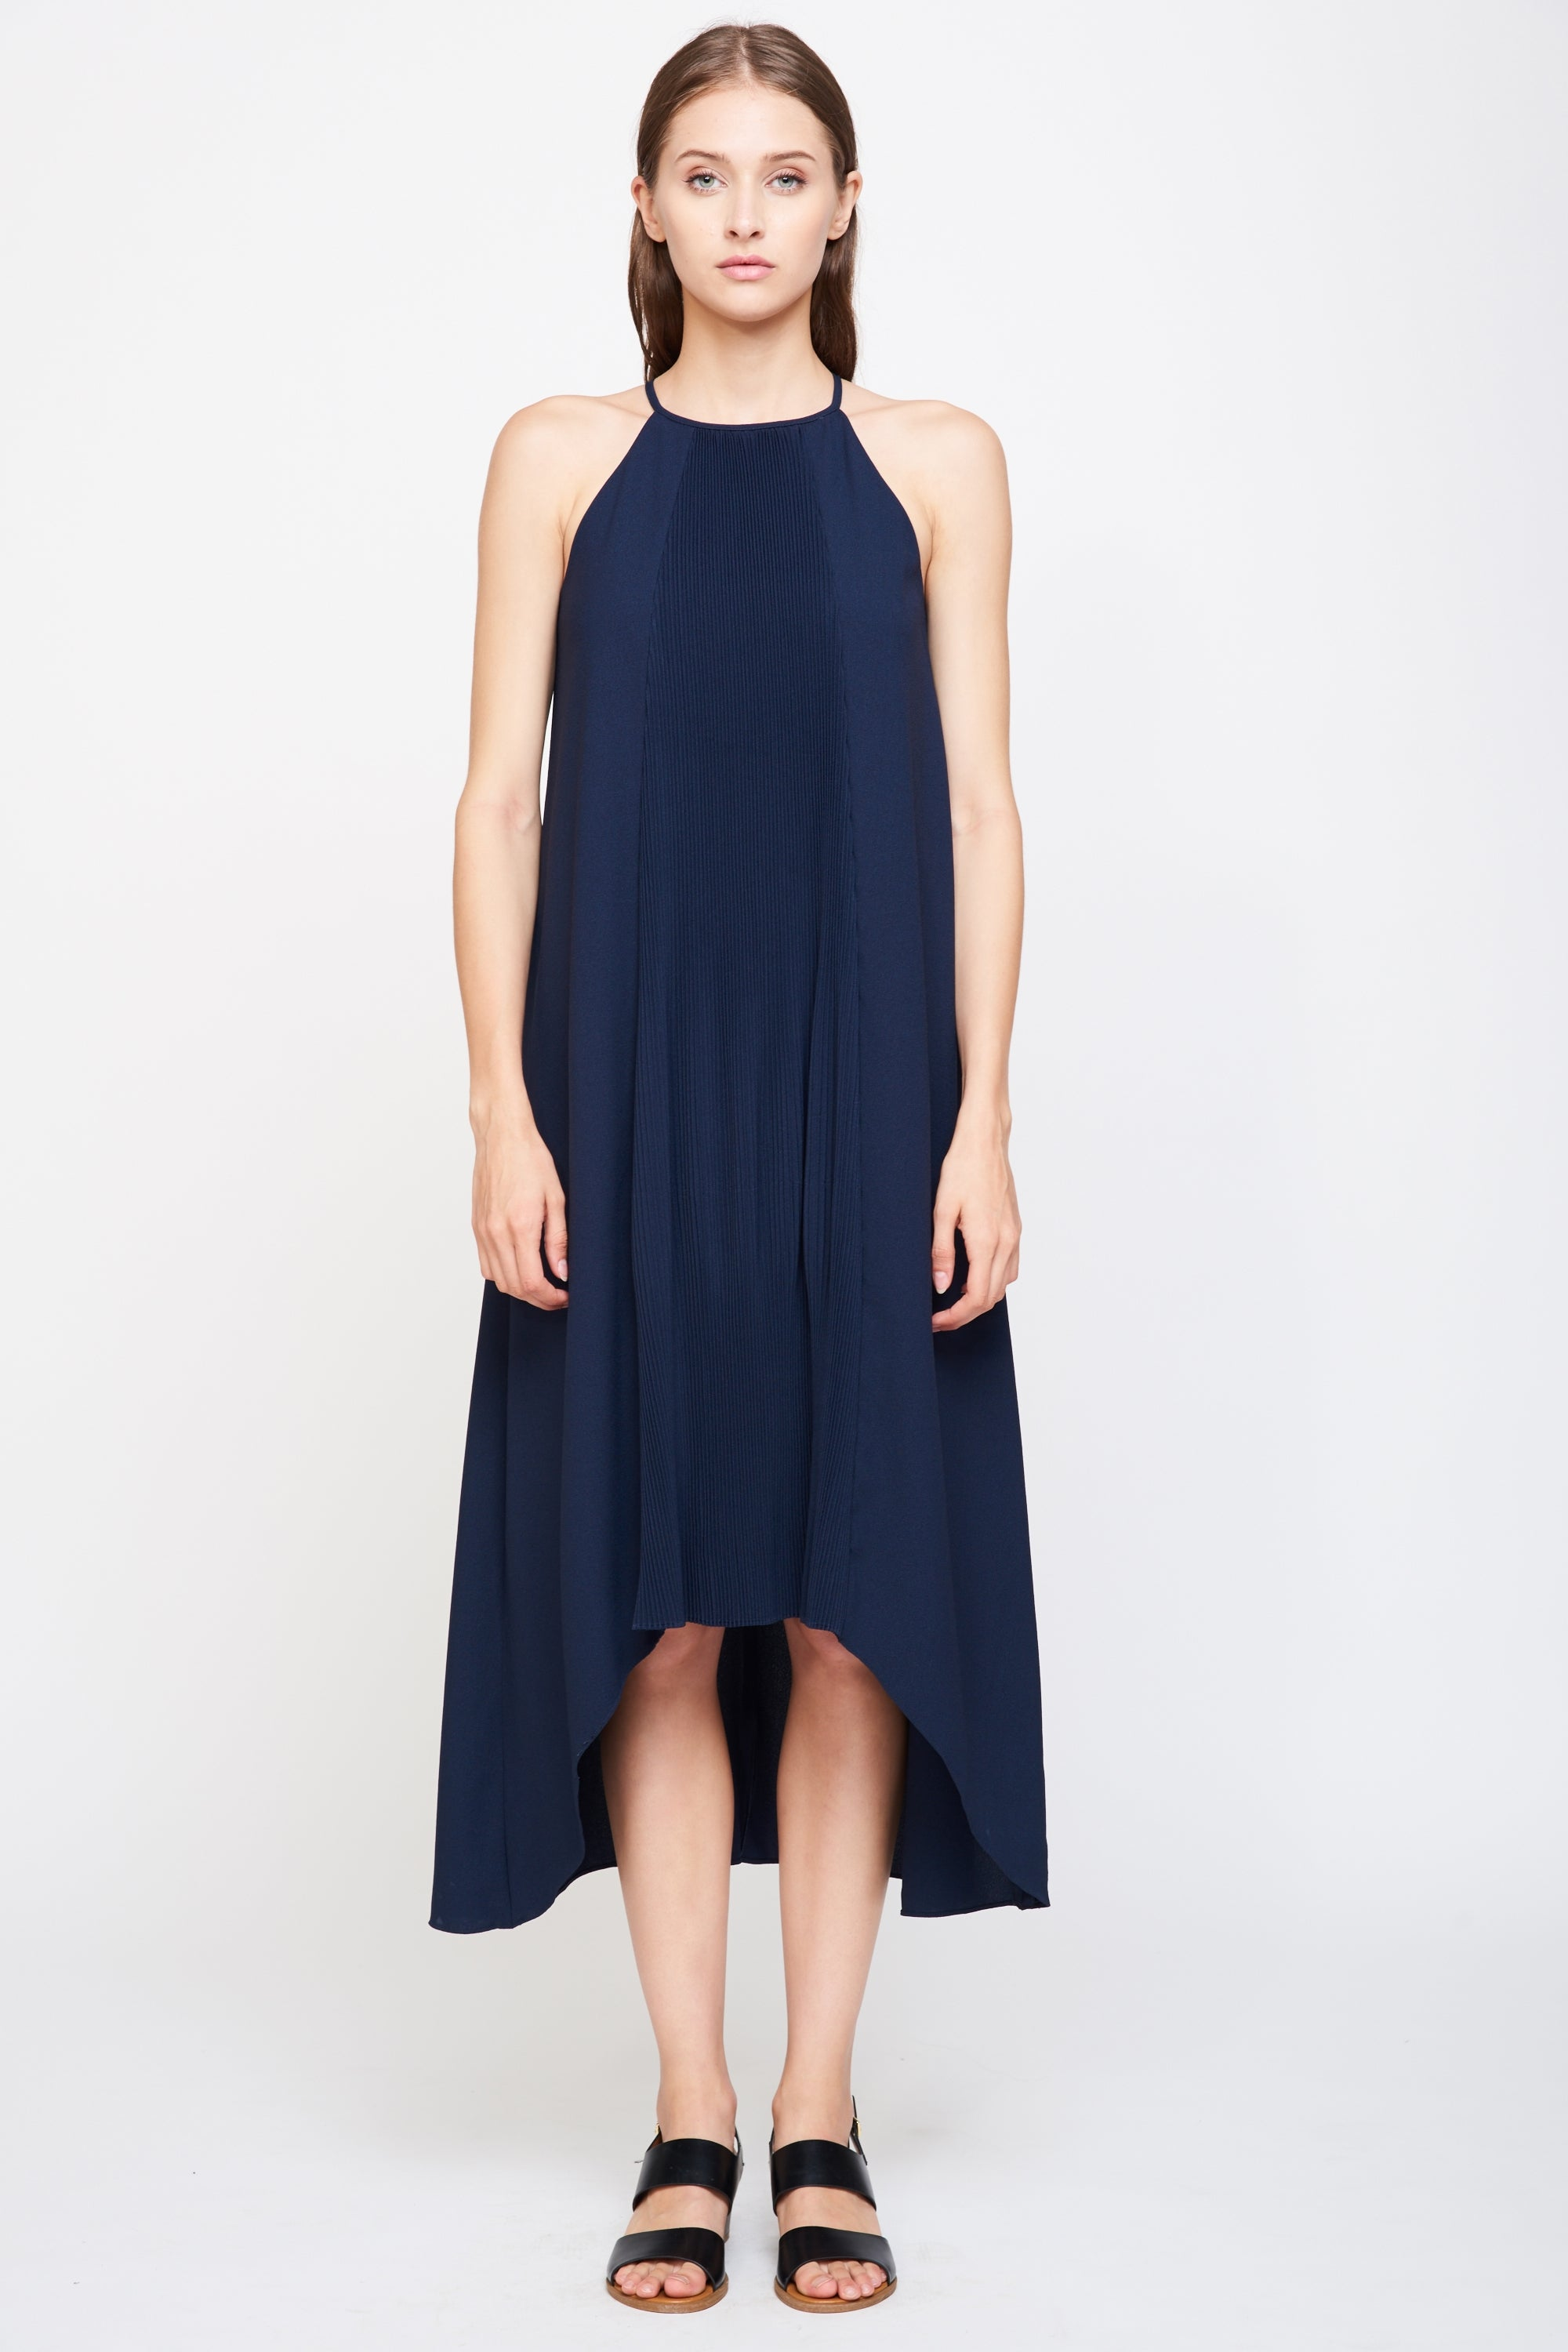 Pleated Halter Dress in Navy